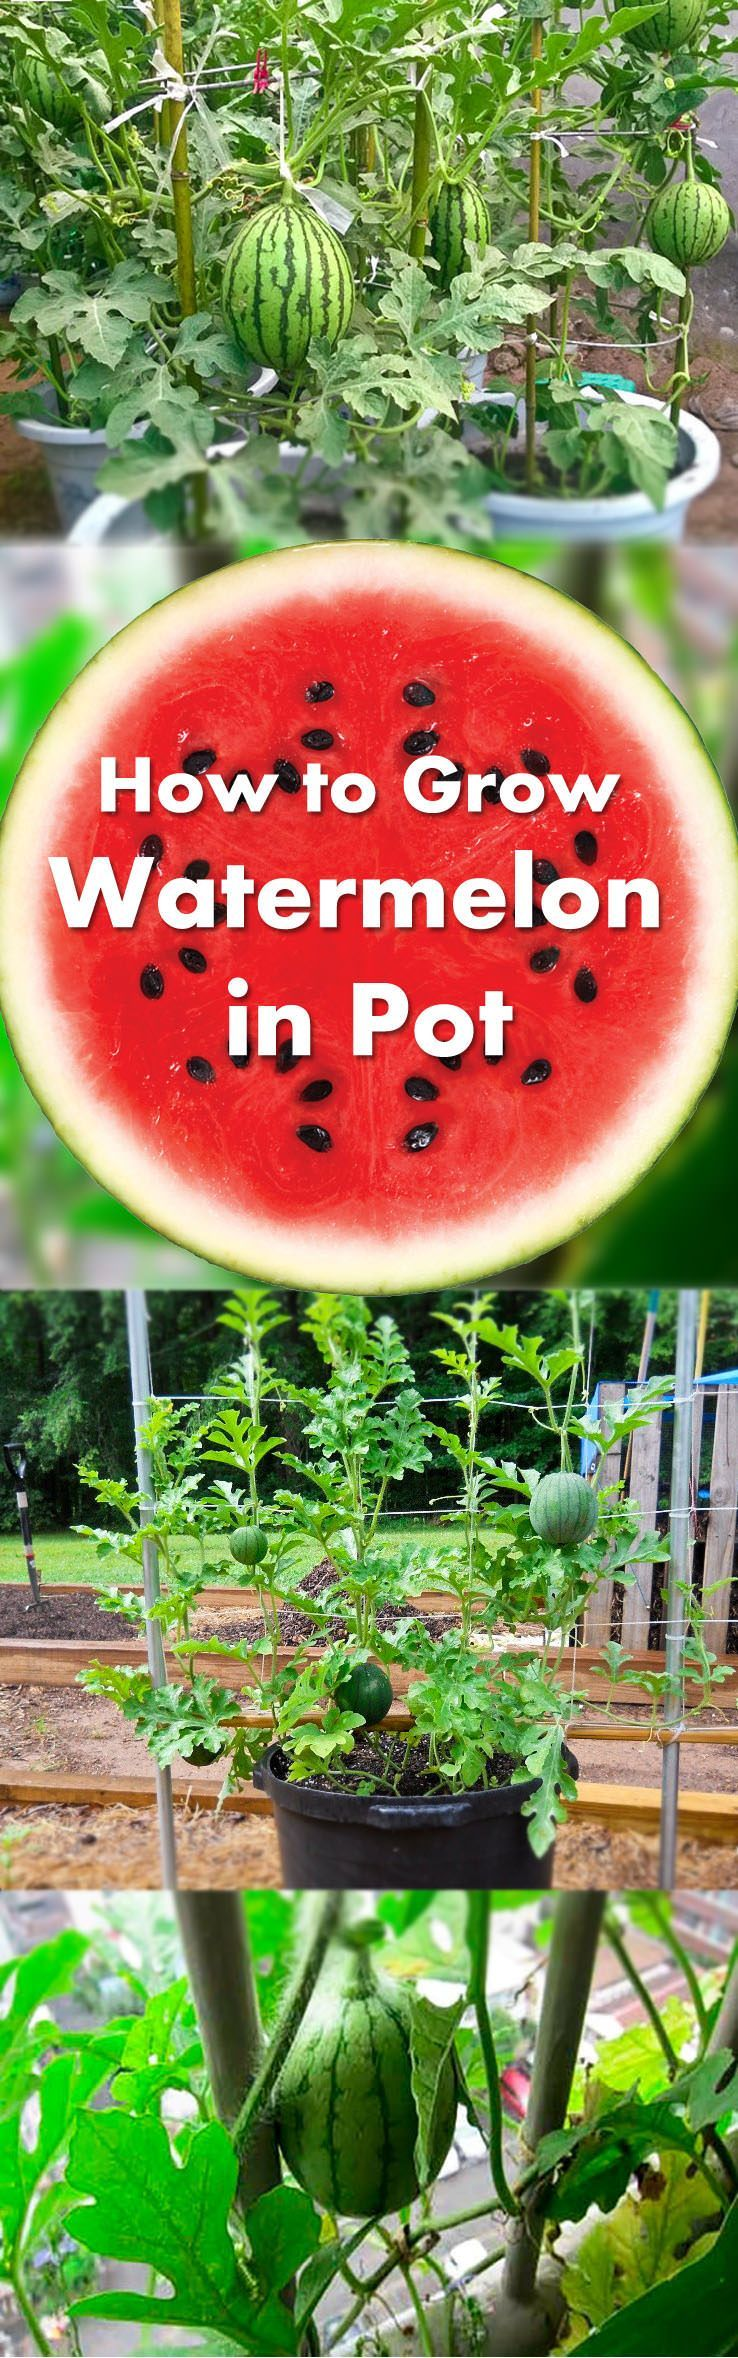 Photo of Learn how to grow watermelon in pots. Growing watermelon in containers allow thi…